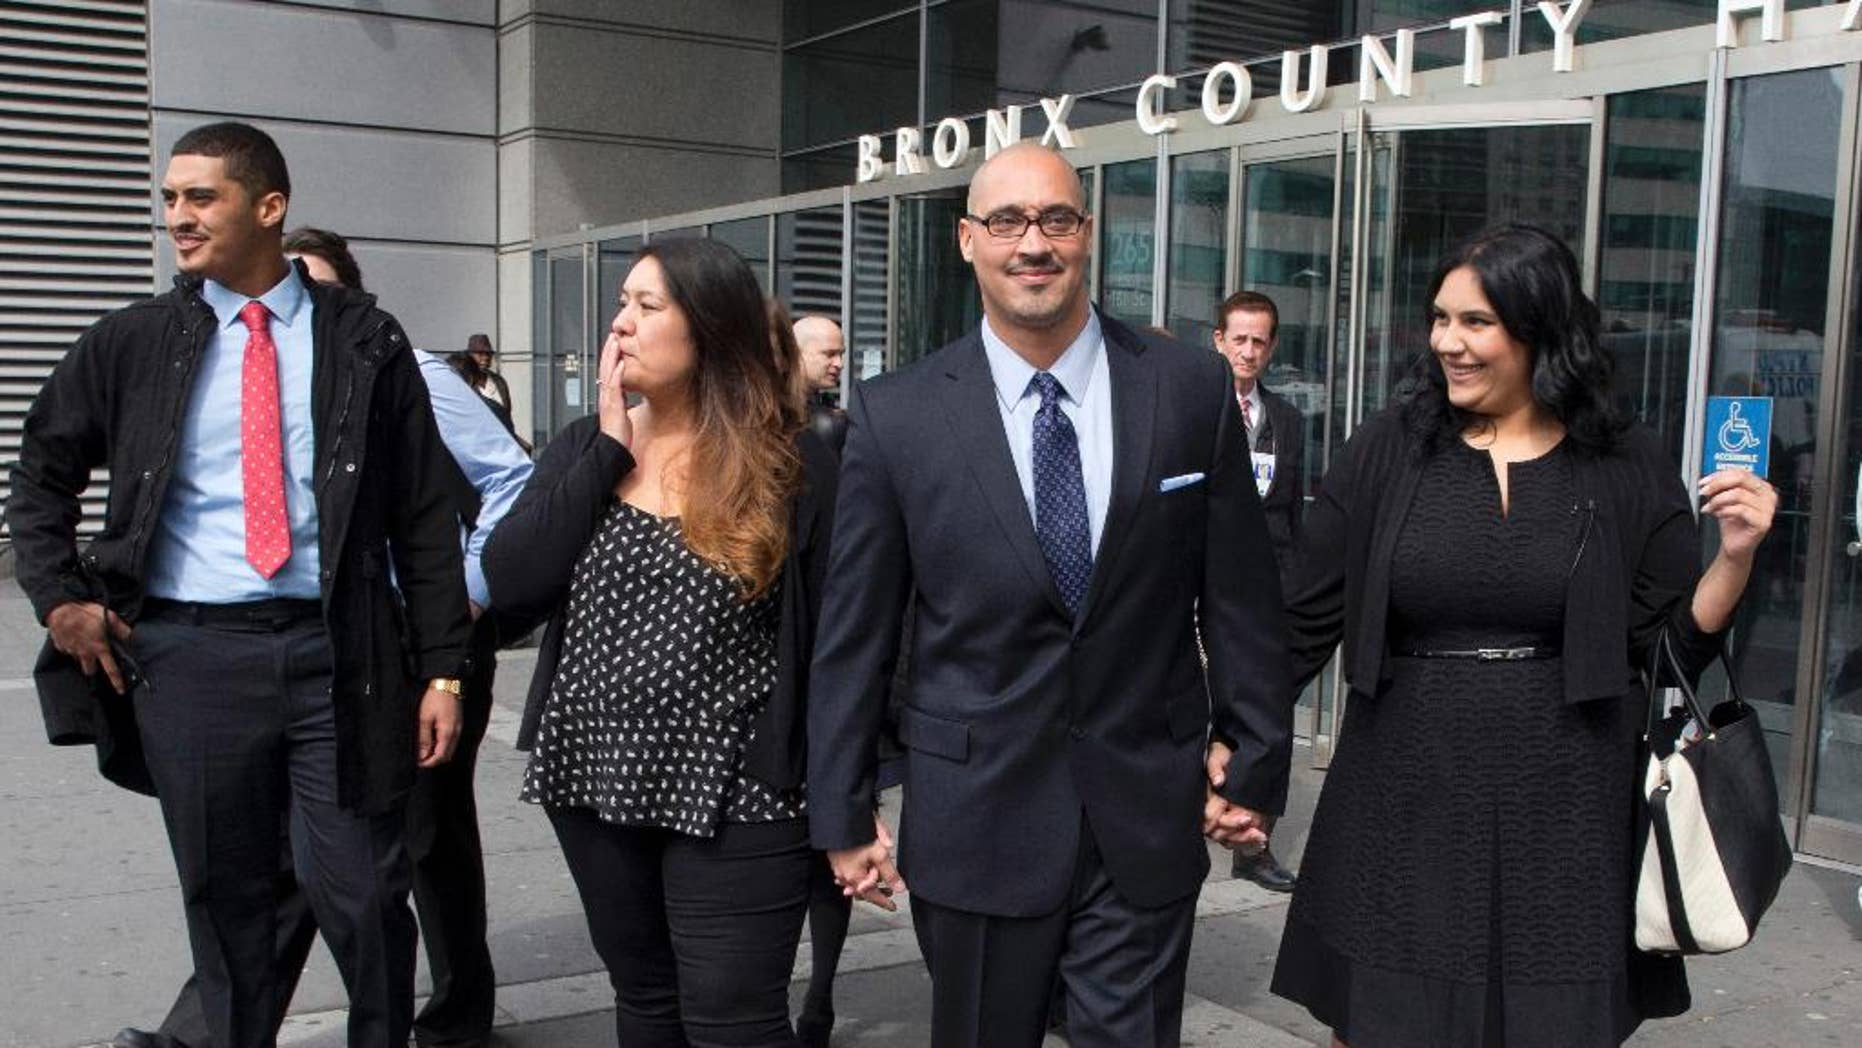 FILE- In this March 23, 2016 file photo, Richard Rosario, center, is joined by his daughter Amanda, right, son Richard Jr., left, and wife Minerva as he leaves Bronx state Supreme Court in New York after his conviction was overturned. Rosario, who spent 20 years in prison for a killing he says happened while he was in Florida, made an unusual request to keep his case open for more investigation, with hopes that newfound evidence would support is claim of innocence, not just that his ex-lawyers erred, but a judge said no. (AP Photo/Mary Altaffer, File)